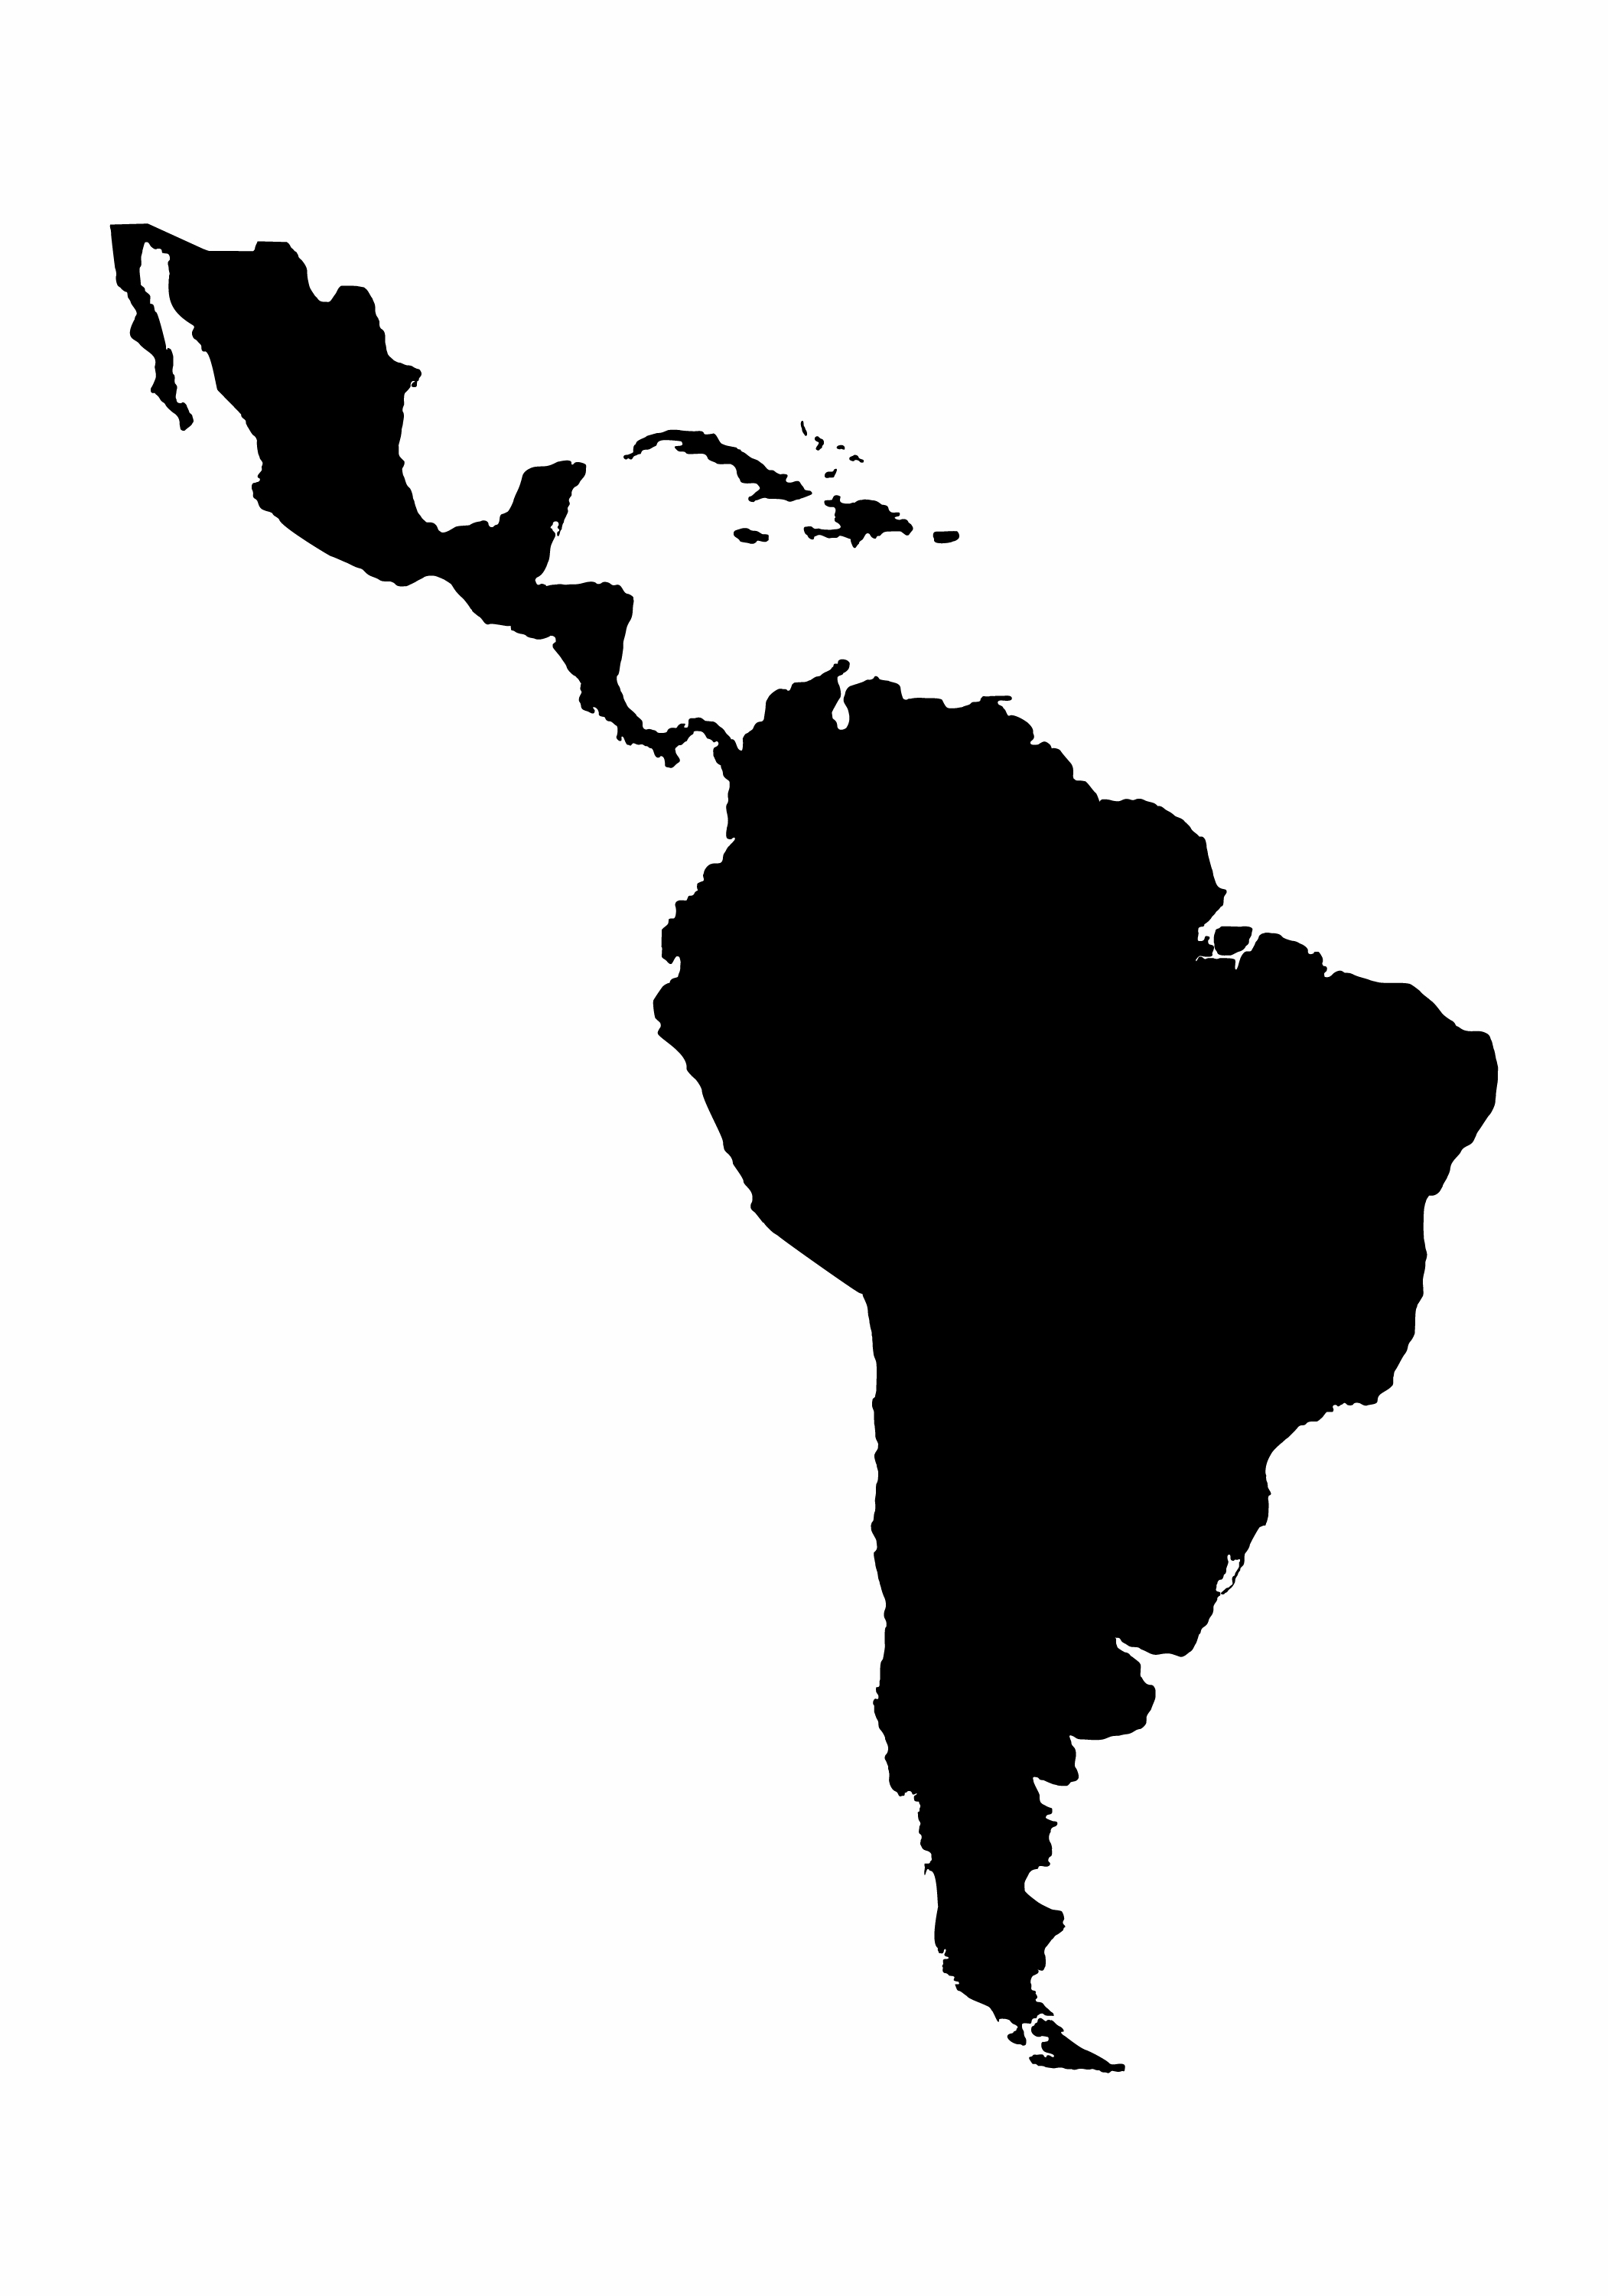 Watch this space -  a silhouette map of Latin and South America